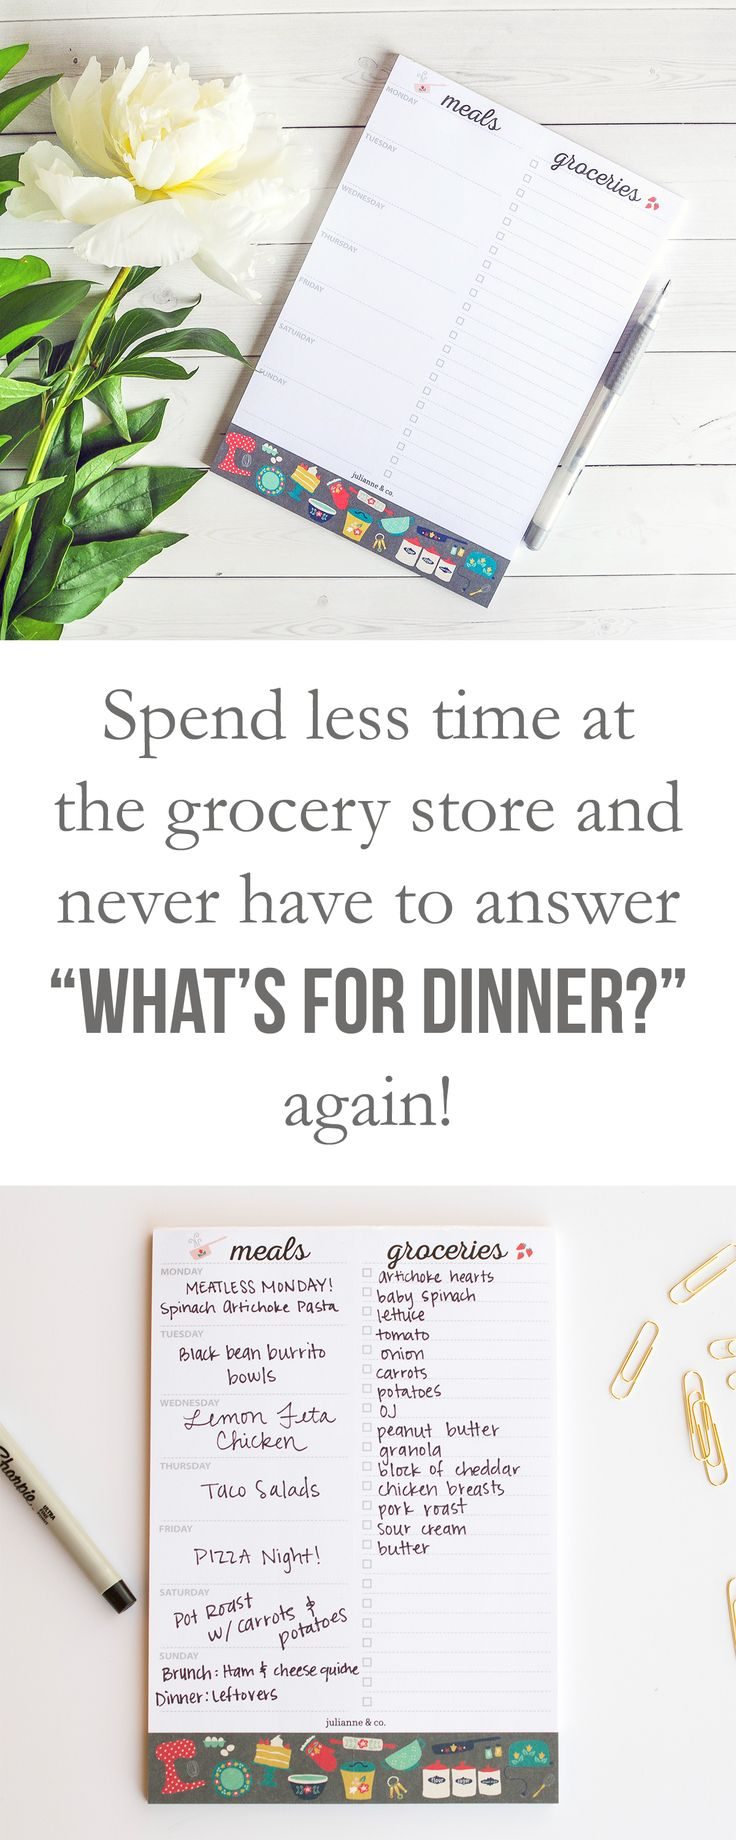 Best 25+ Grocery lists ideas on Pinterest | Clean eating ...